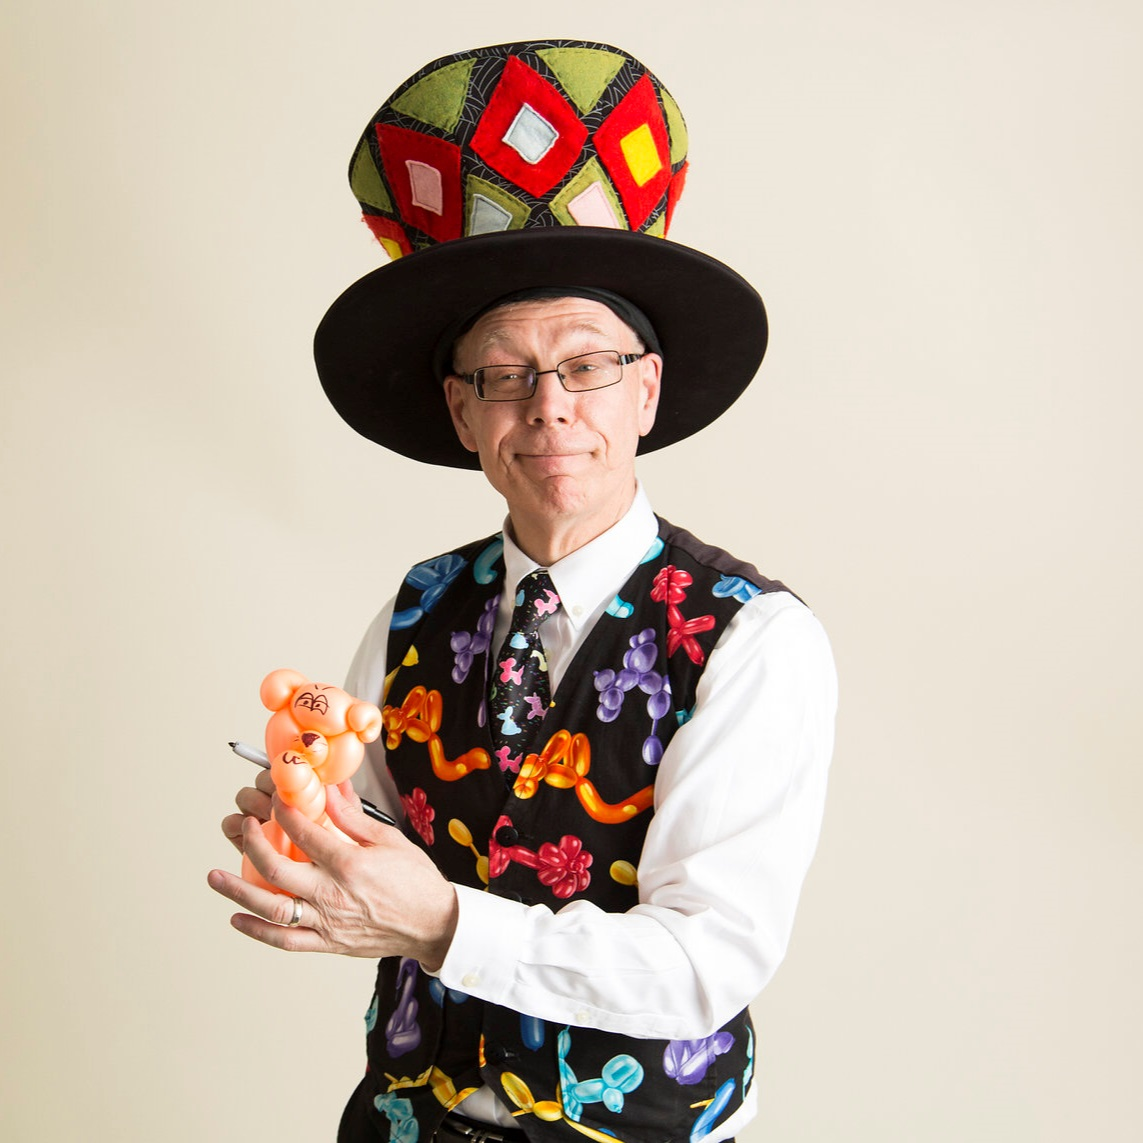 Pat Roth,Balloon Guy - Free Family Fun Zone Entertainment @ Carlyle Public Library 1-4 PMPat Roth has been clowning around Central Canada and the United States for over 20 years, performing at birthday parties, cultural events and family gatherings. He specializes in professional balloon sculpting, face painting and family entertainment.Pat has a B.A. in Arts Education, is a graduate of Goldstone and Johnson's International School of Mime and holds a Bachelor Degree in Religious Studies. He also studied under the famous French mime, Marcel Marceau.